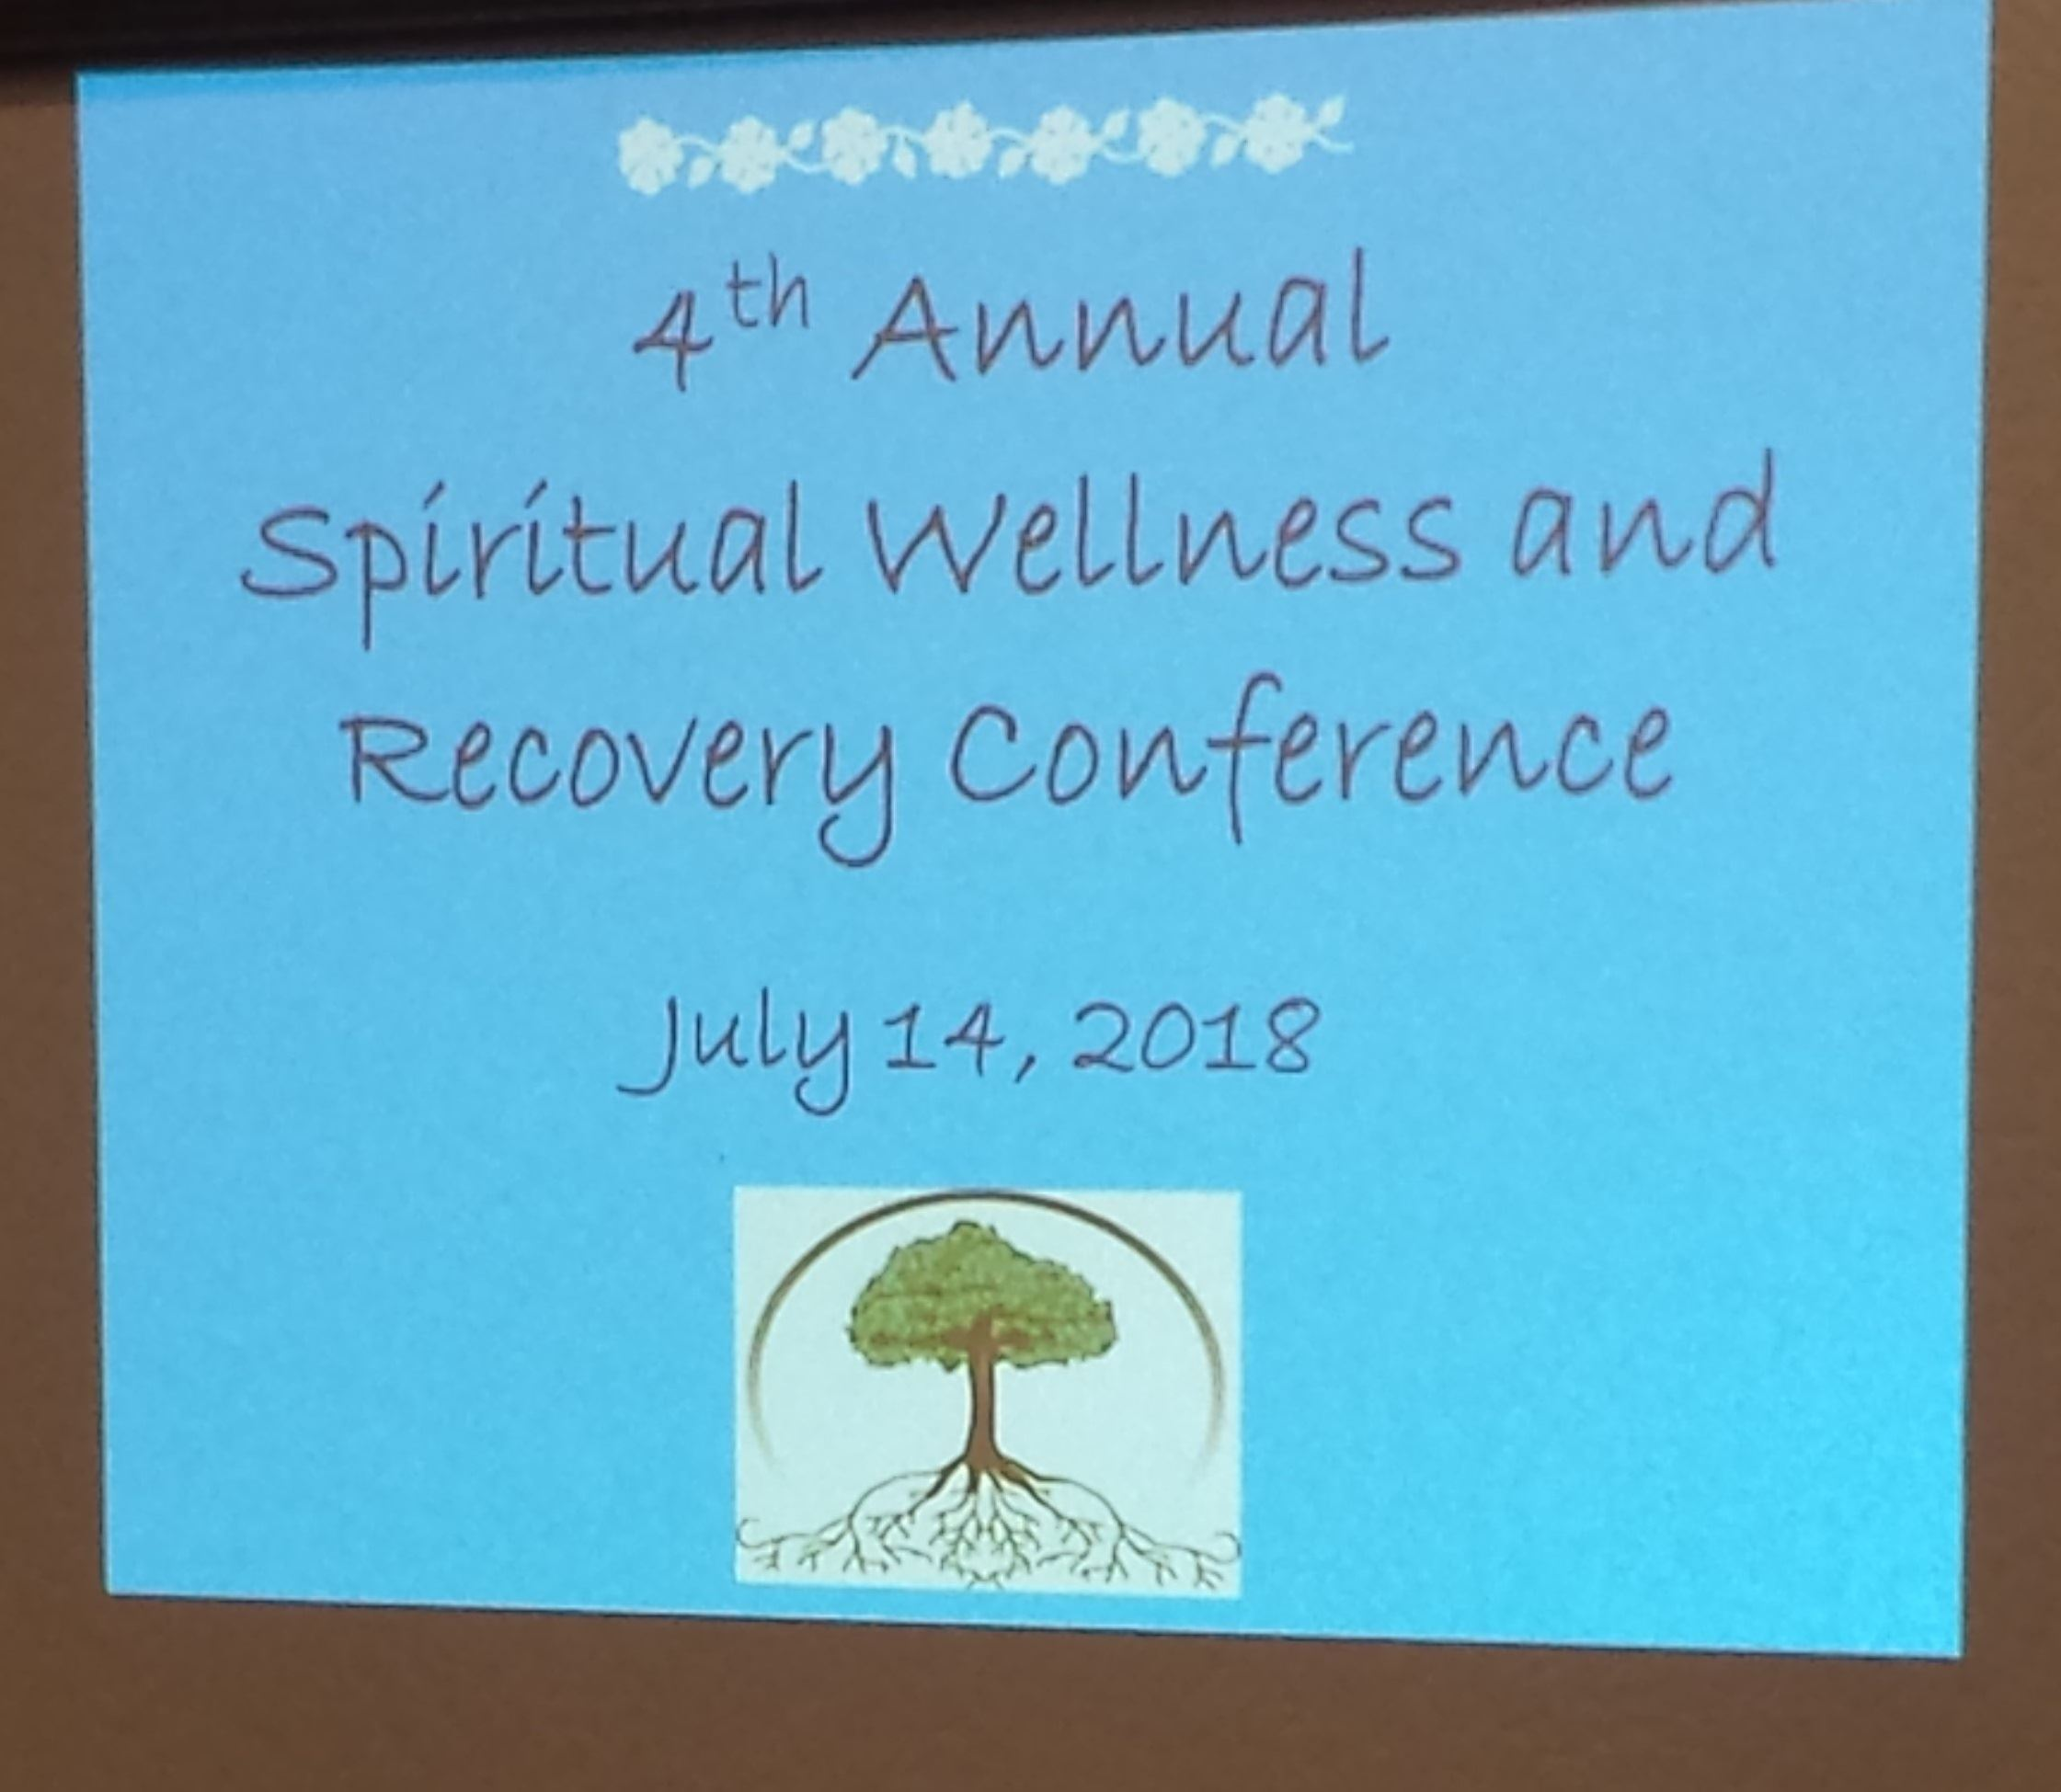 4th Annual Conference 07-14-18